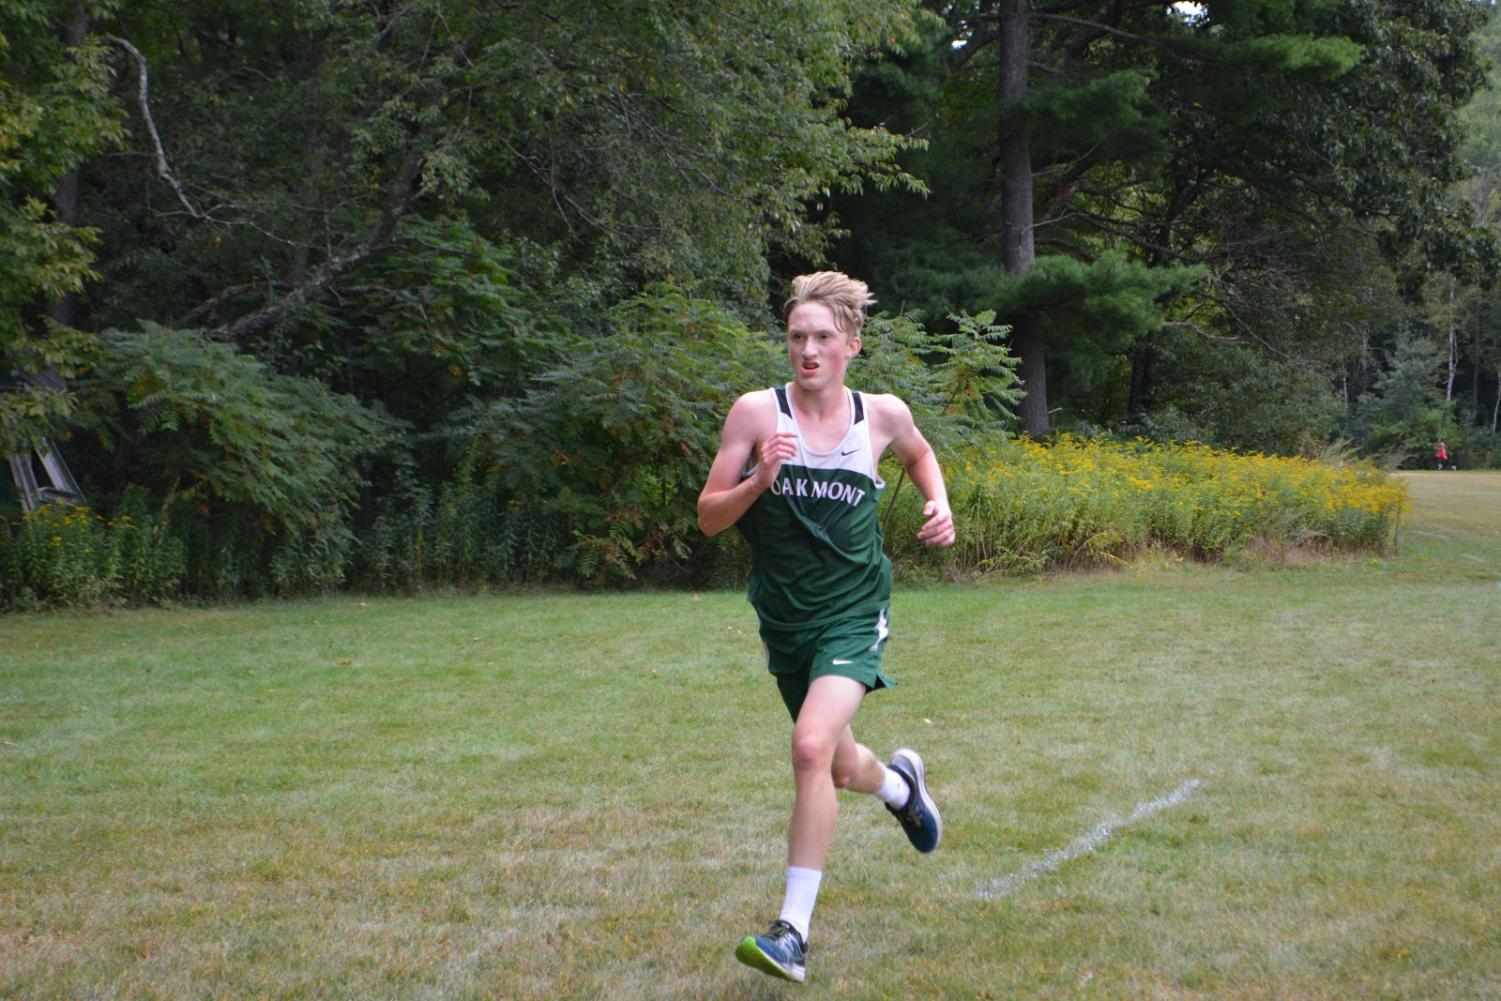 Marty Steucek running into the finish during September 10ths cross country meet against North Middlesex. Steucek finished 7th for the team with a time of 18:24. The cross country course was 2.8 miles.